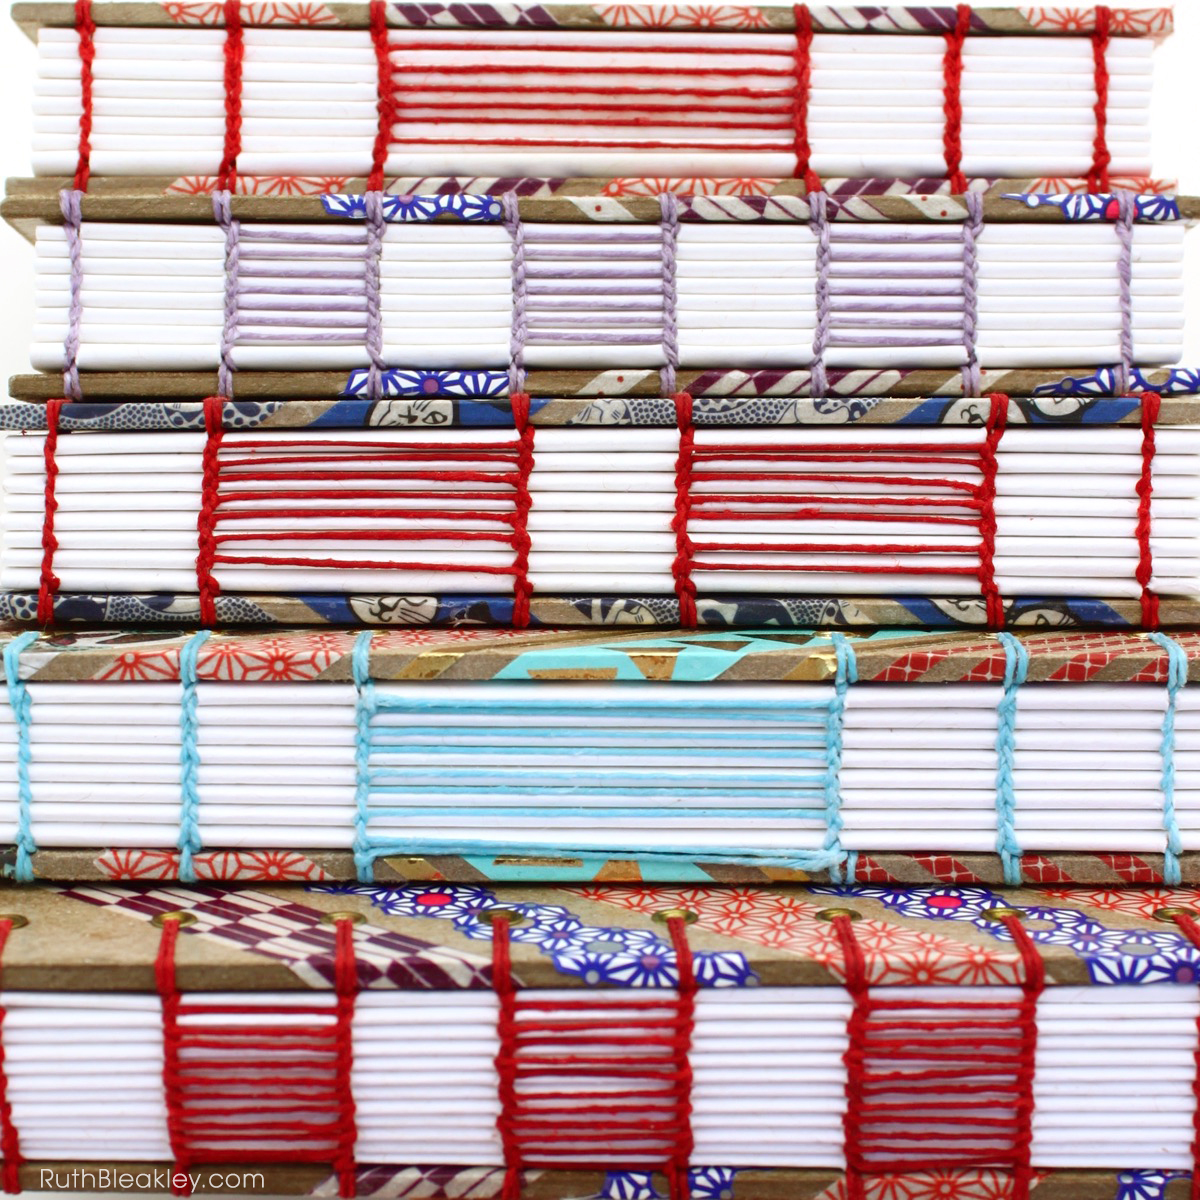 Washi Tape Journals with ladder coptic stitch handmade by Ruth Bleakley - 5